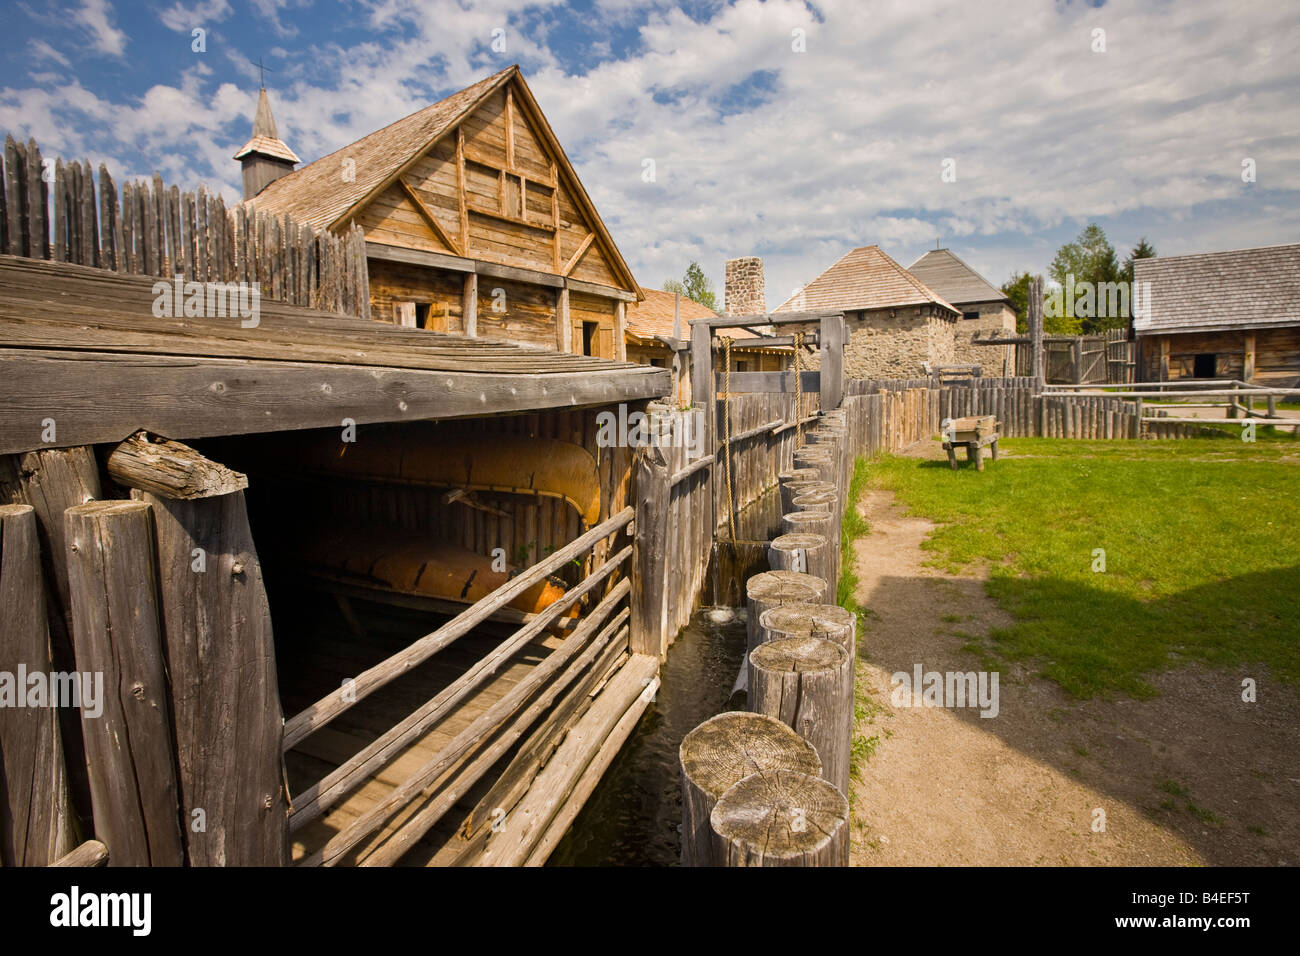 Canoe/boat shed at the Sainte-Marie among the Hurons complex in the town of Midland, Ontario, Canada. - Stock Image